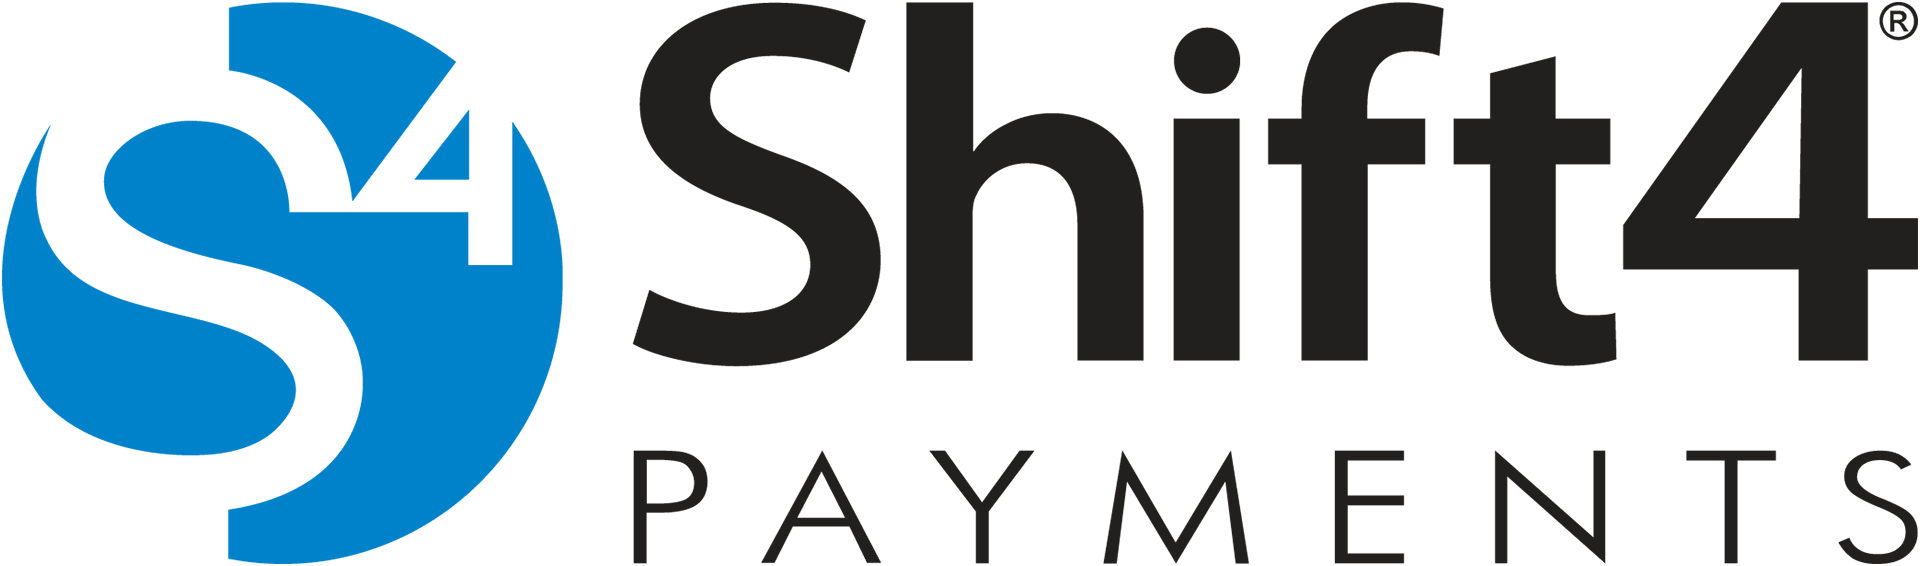 Shift4 Payments - Fitzhugh Point of Sale solutions